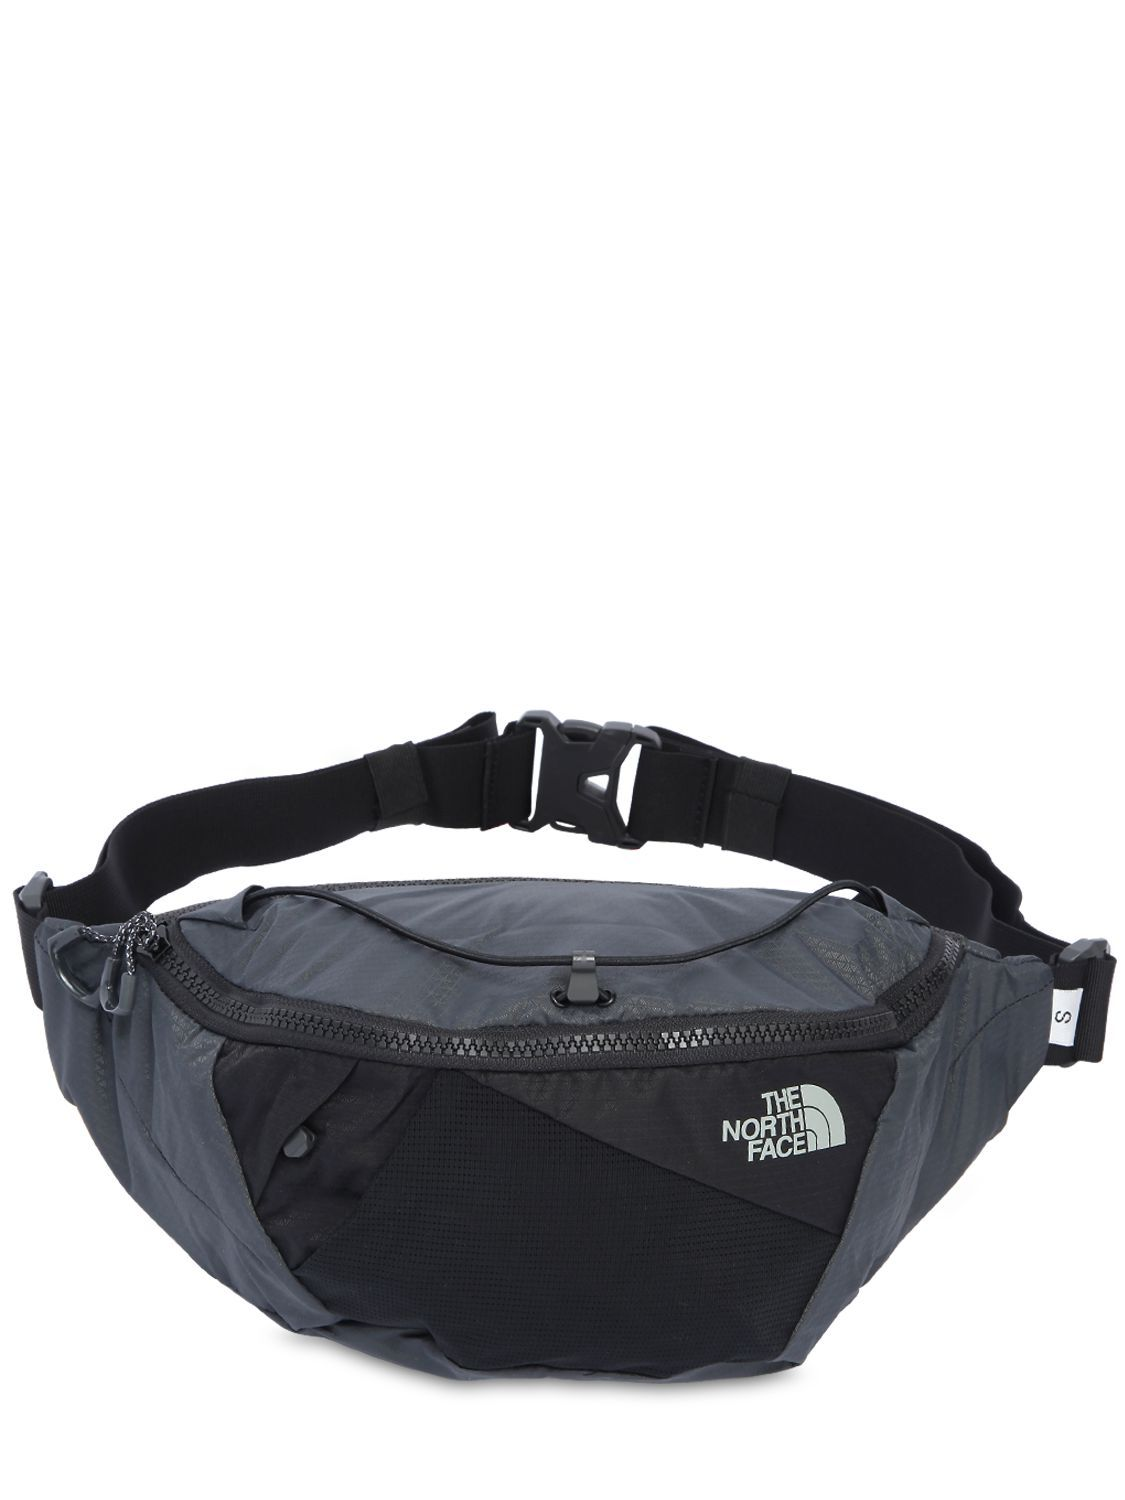 The North Face Thenorthface Bags Belt Bags Belt Pack The North Face North Face Mens